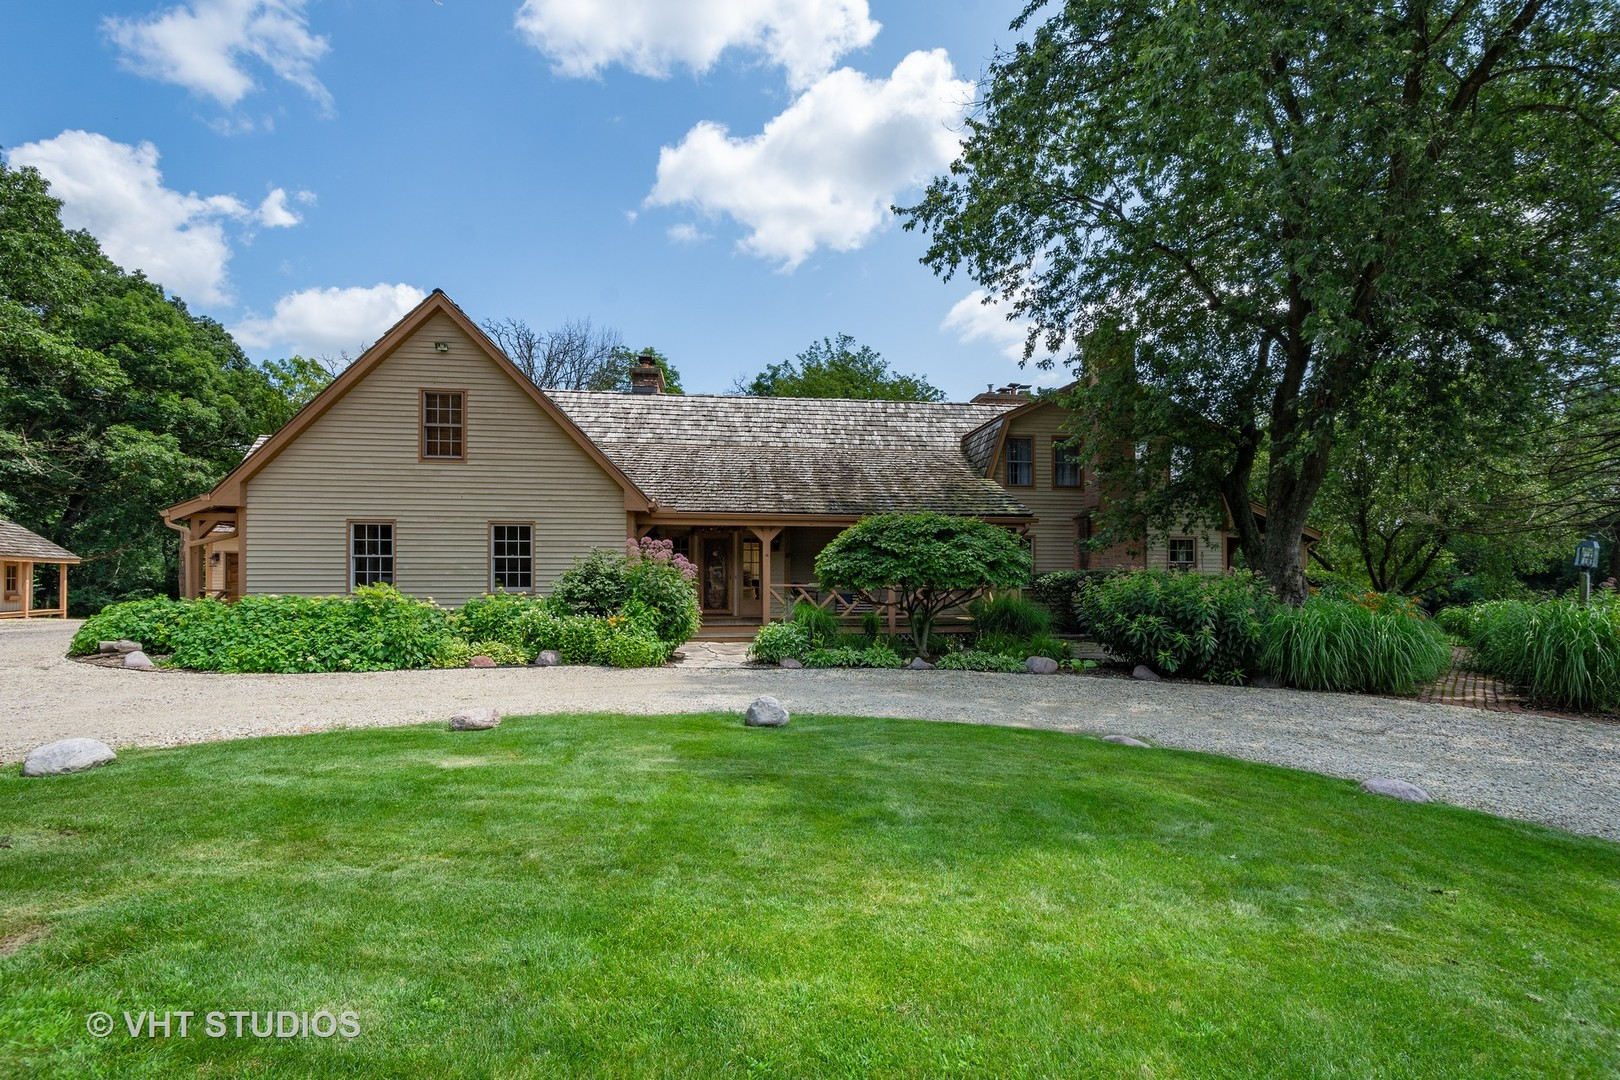 61 Ridge Road, Barrington Hills, Illinois 60010